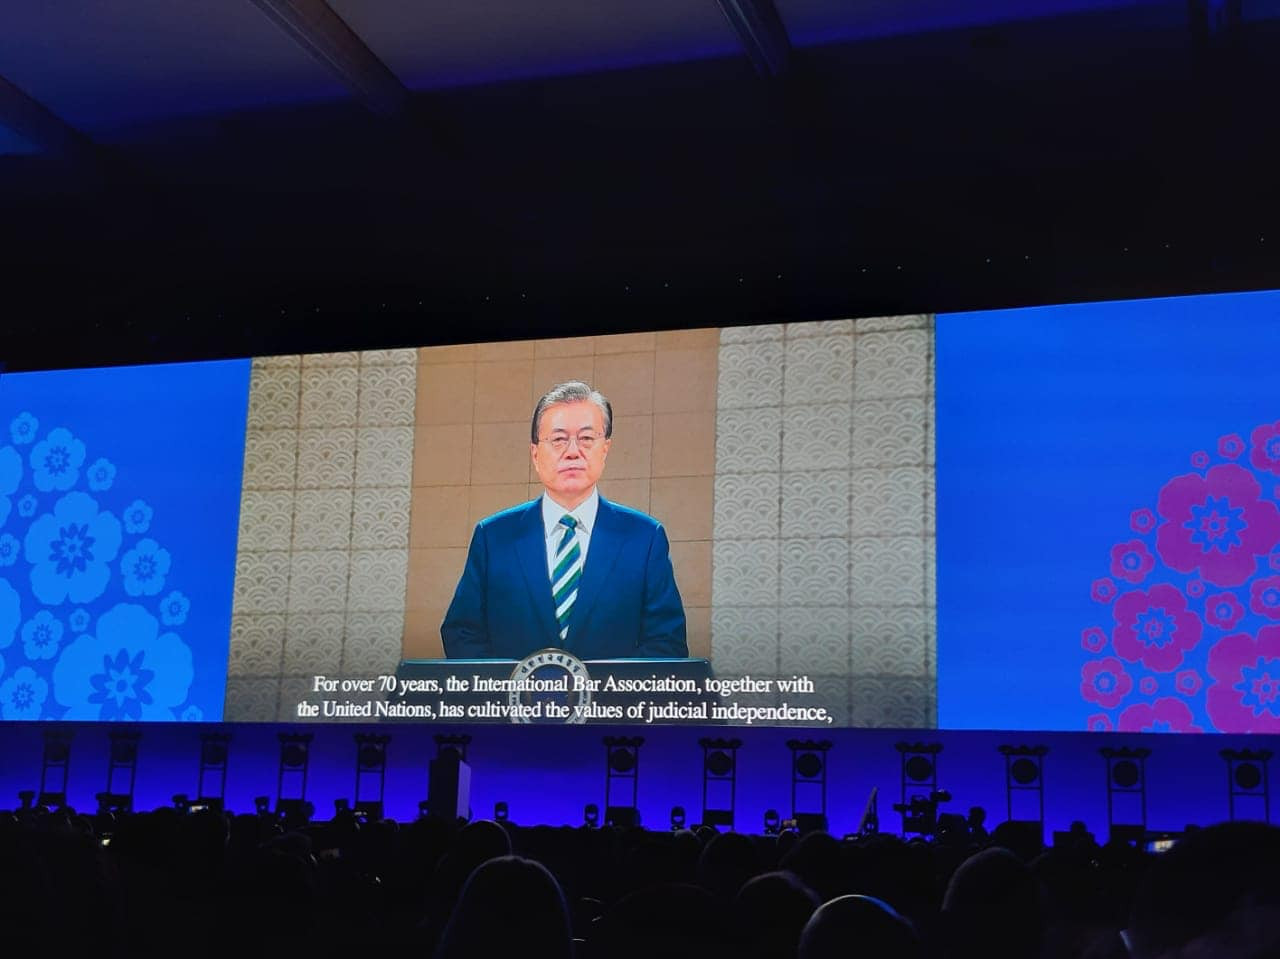 Moon Jae-in, president of South Korea , shared thought about the IBA 2019